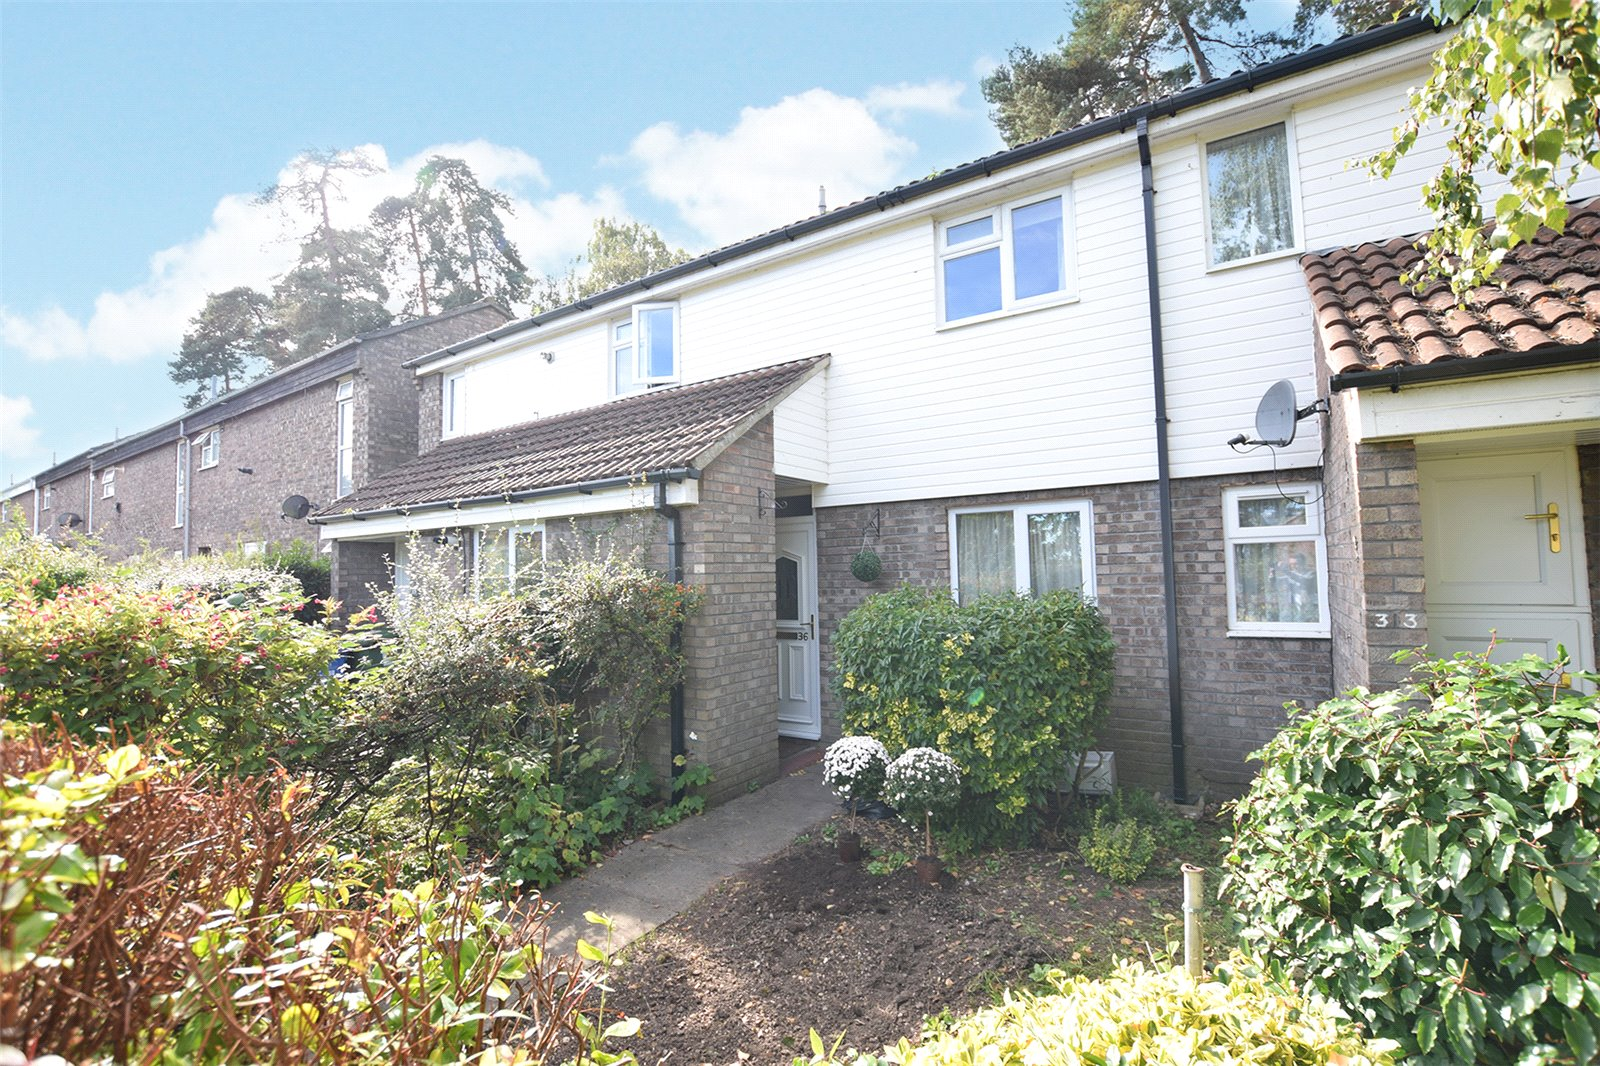 1 Bedroom Maisonette Flat for sale in Keepers Coombe, Crown Wood, Bracknell, Berkshire, RG12